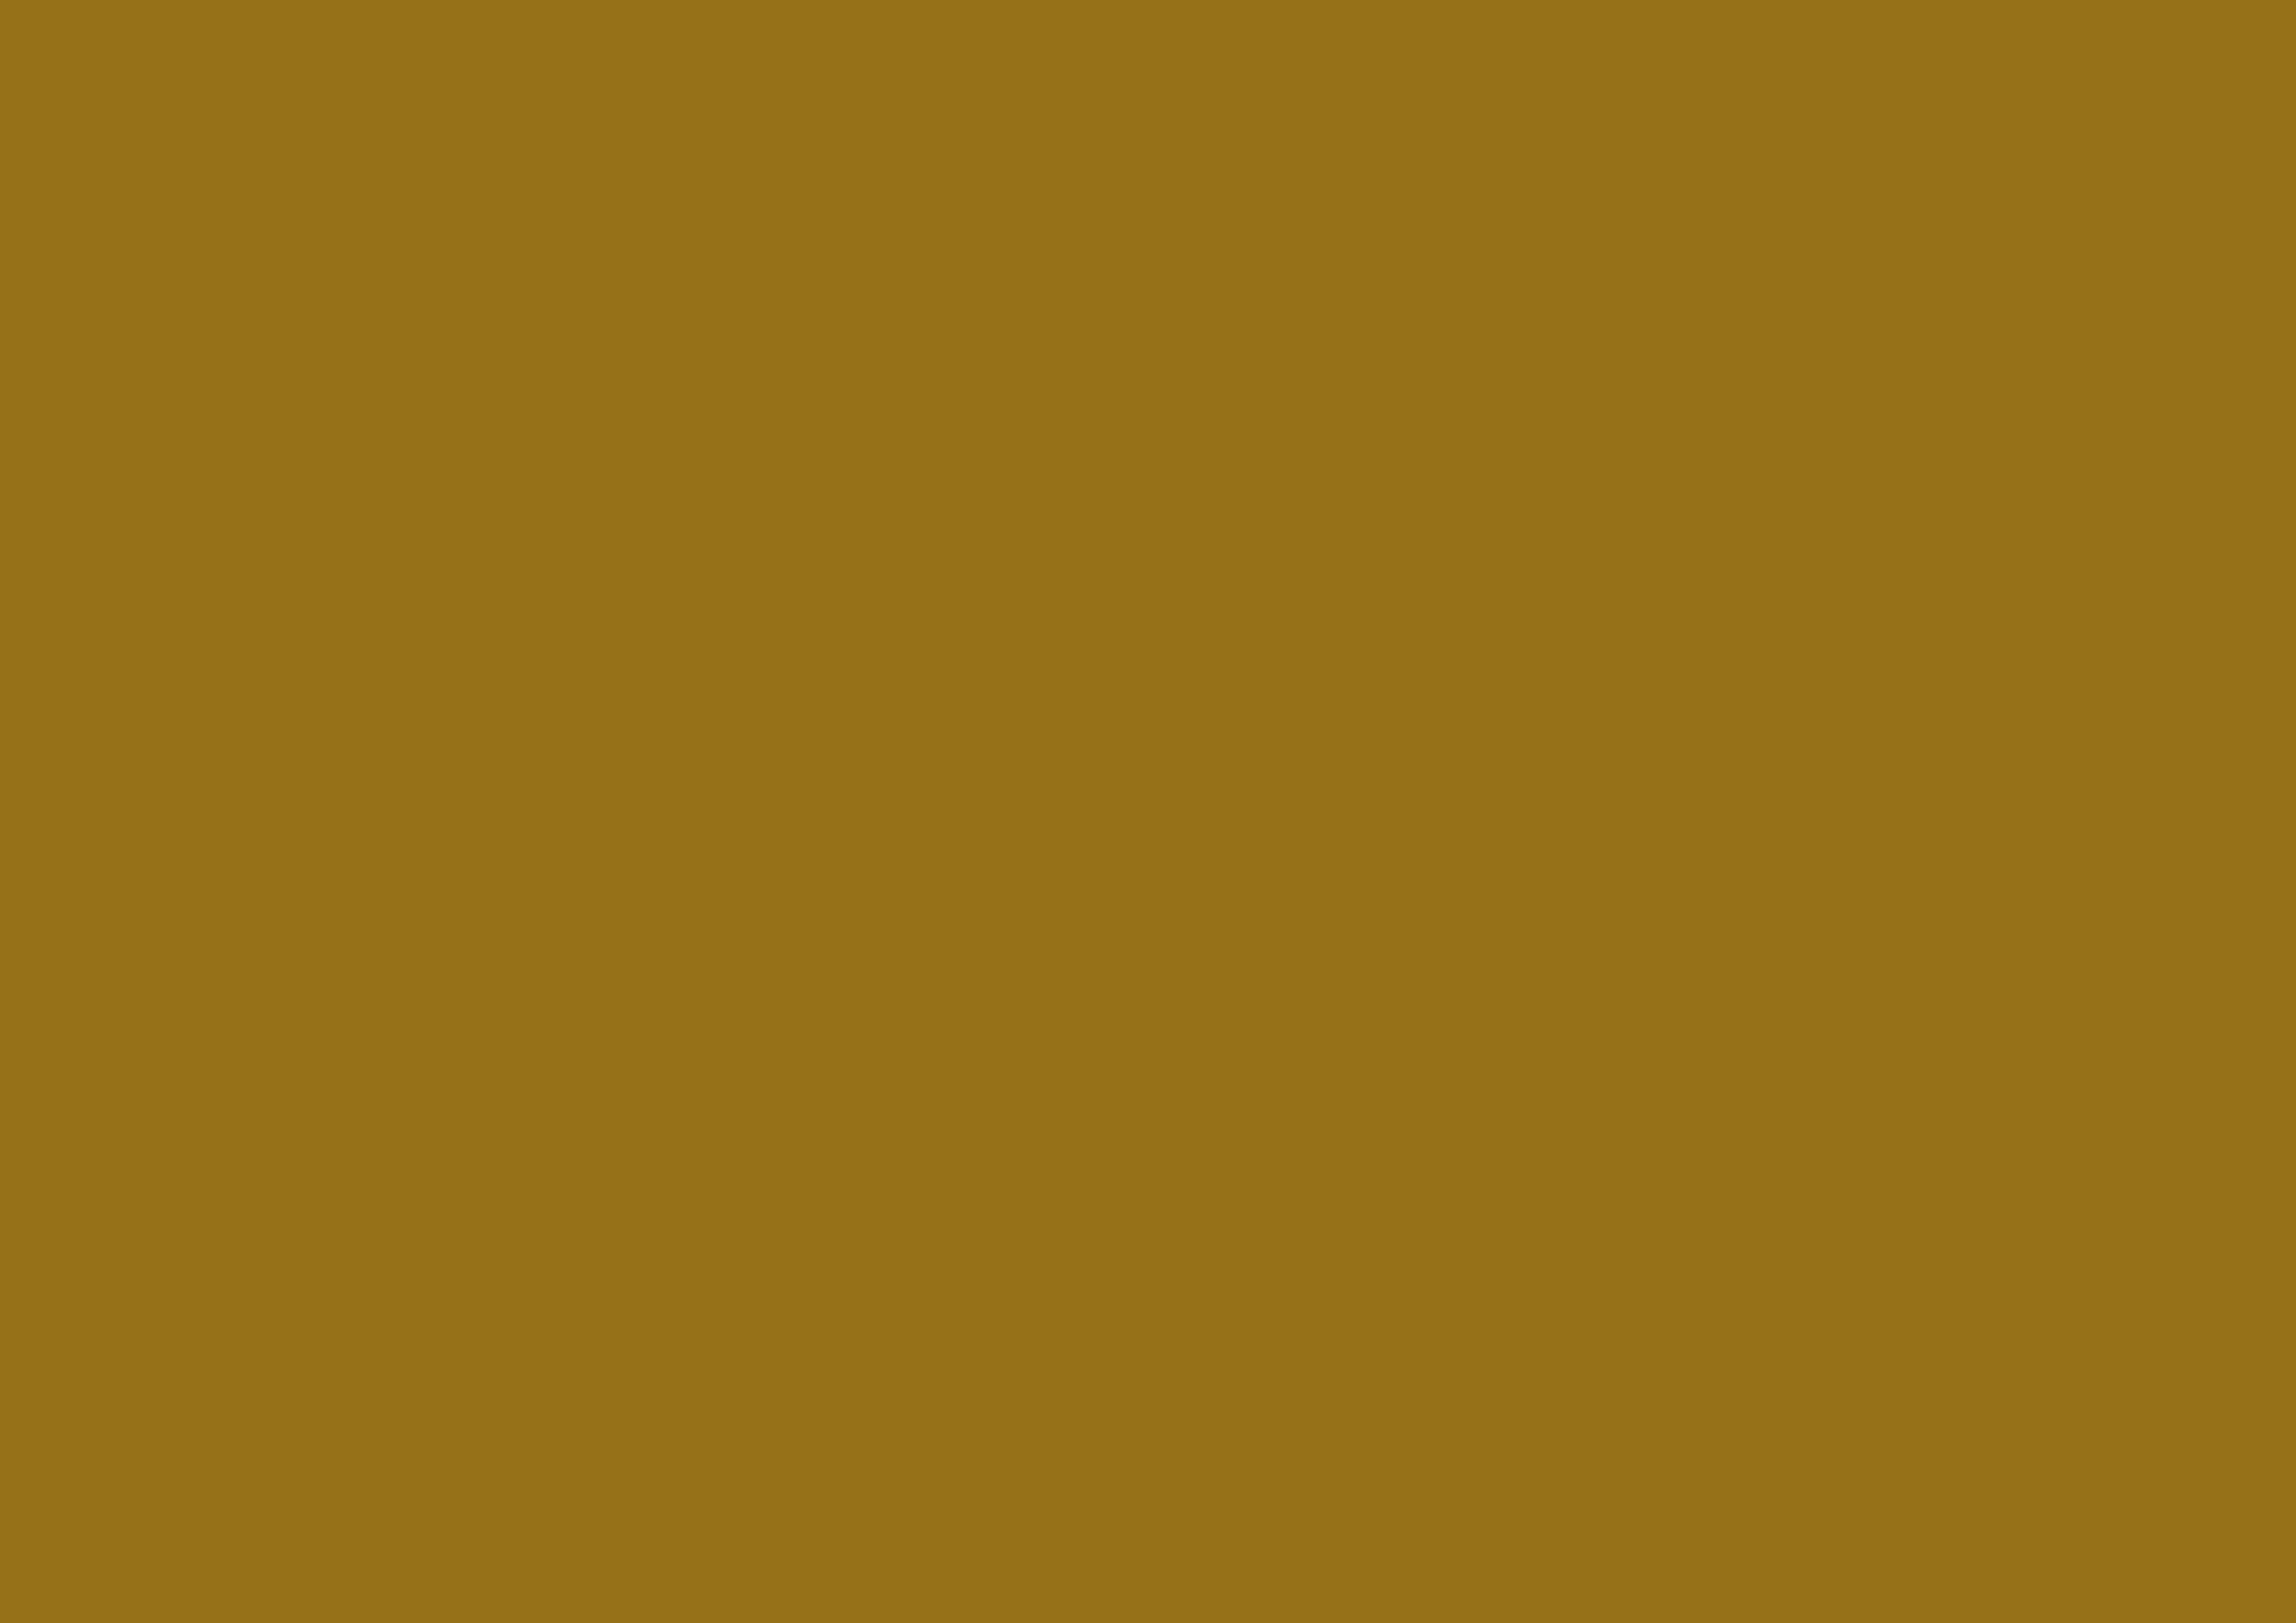 3508x2480 Drab Solid Color Background